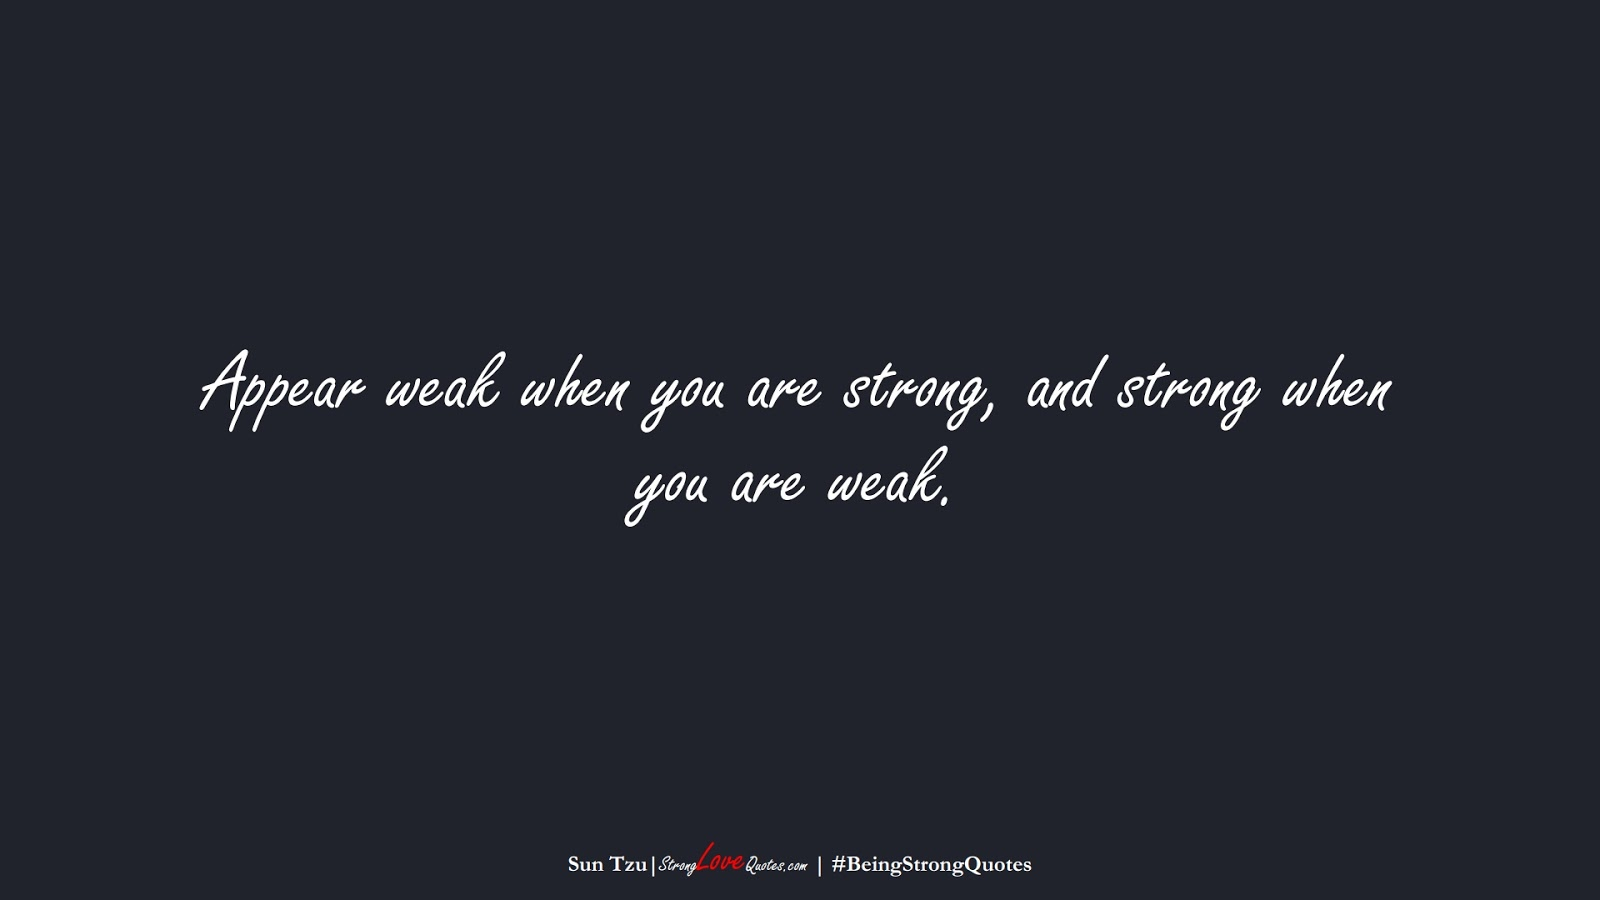 Appear weak when you are strong, and strong when you are weak. (Sun Tzu);  #BeingStrongQuotes